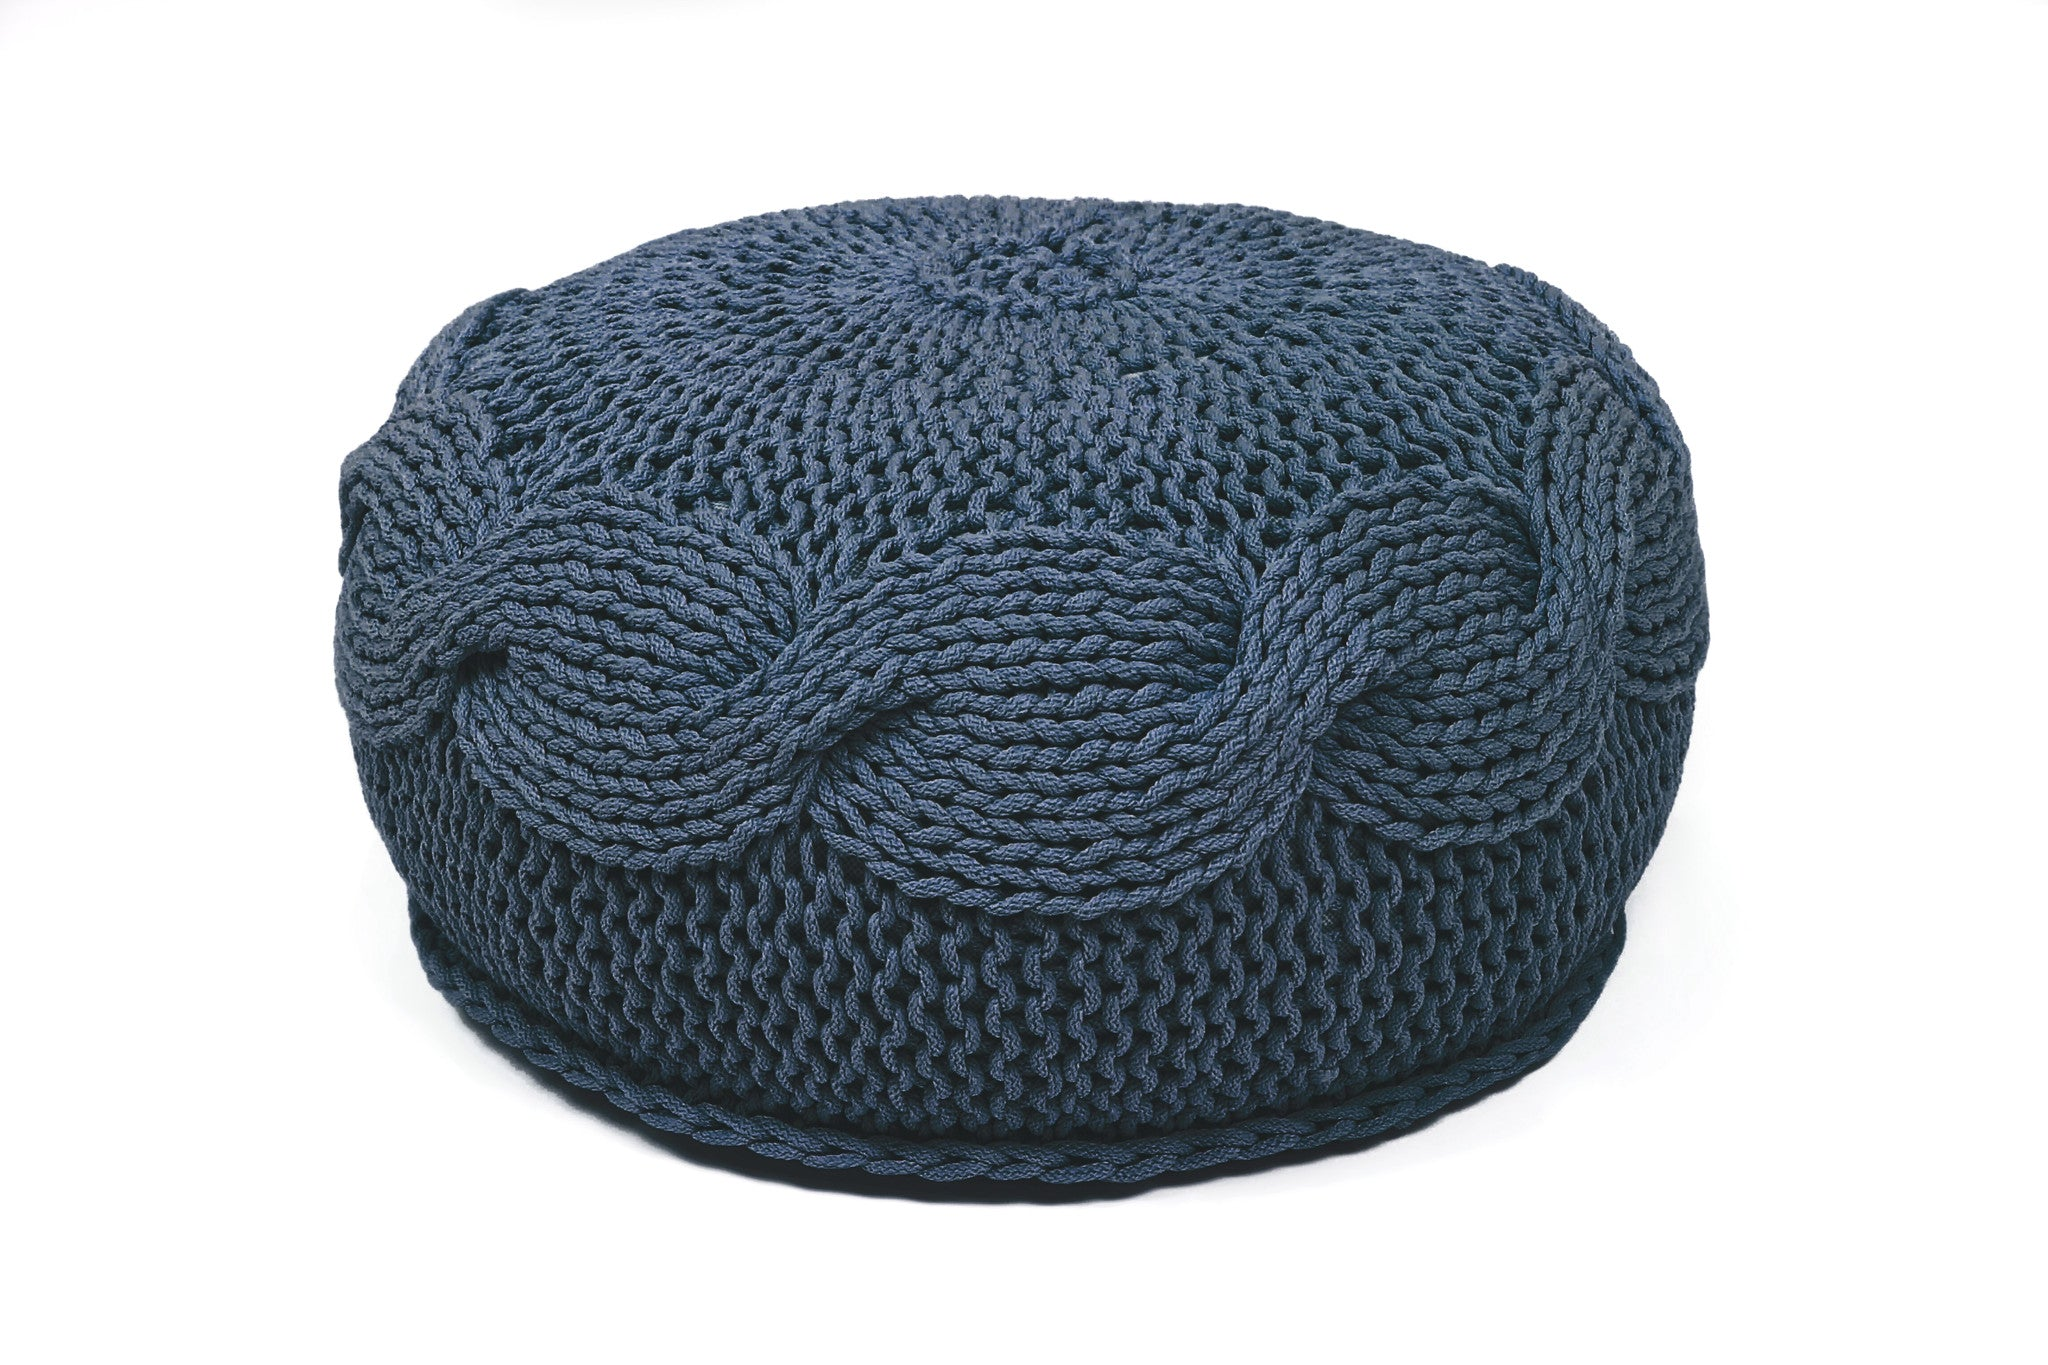 SOL knitted POUF